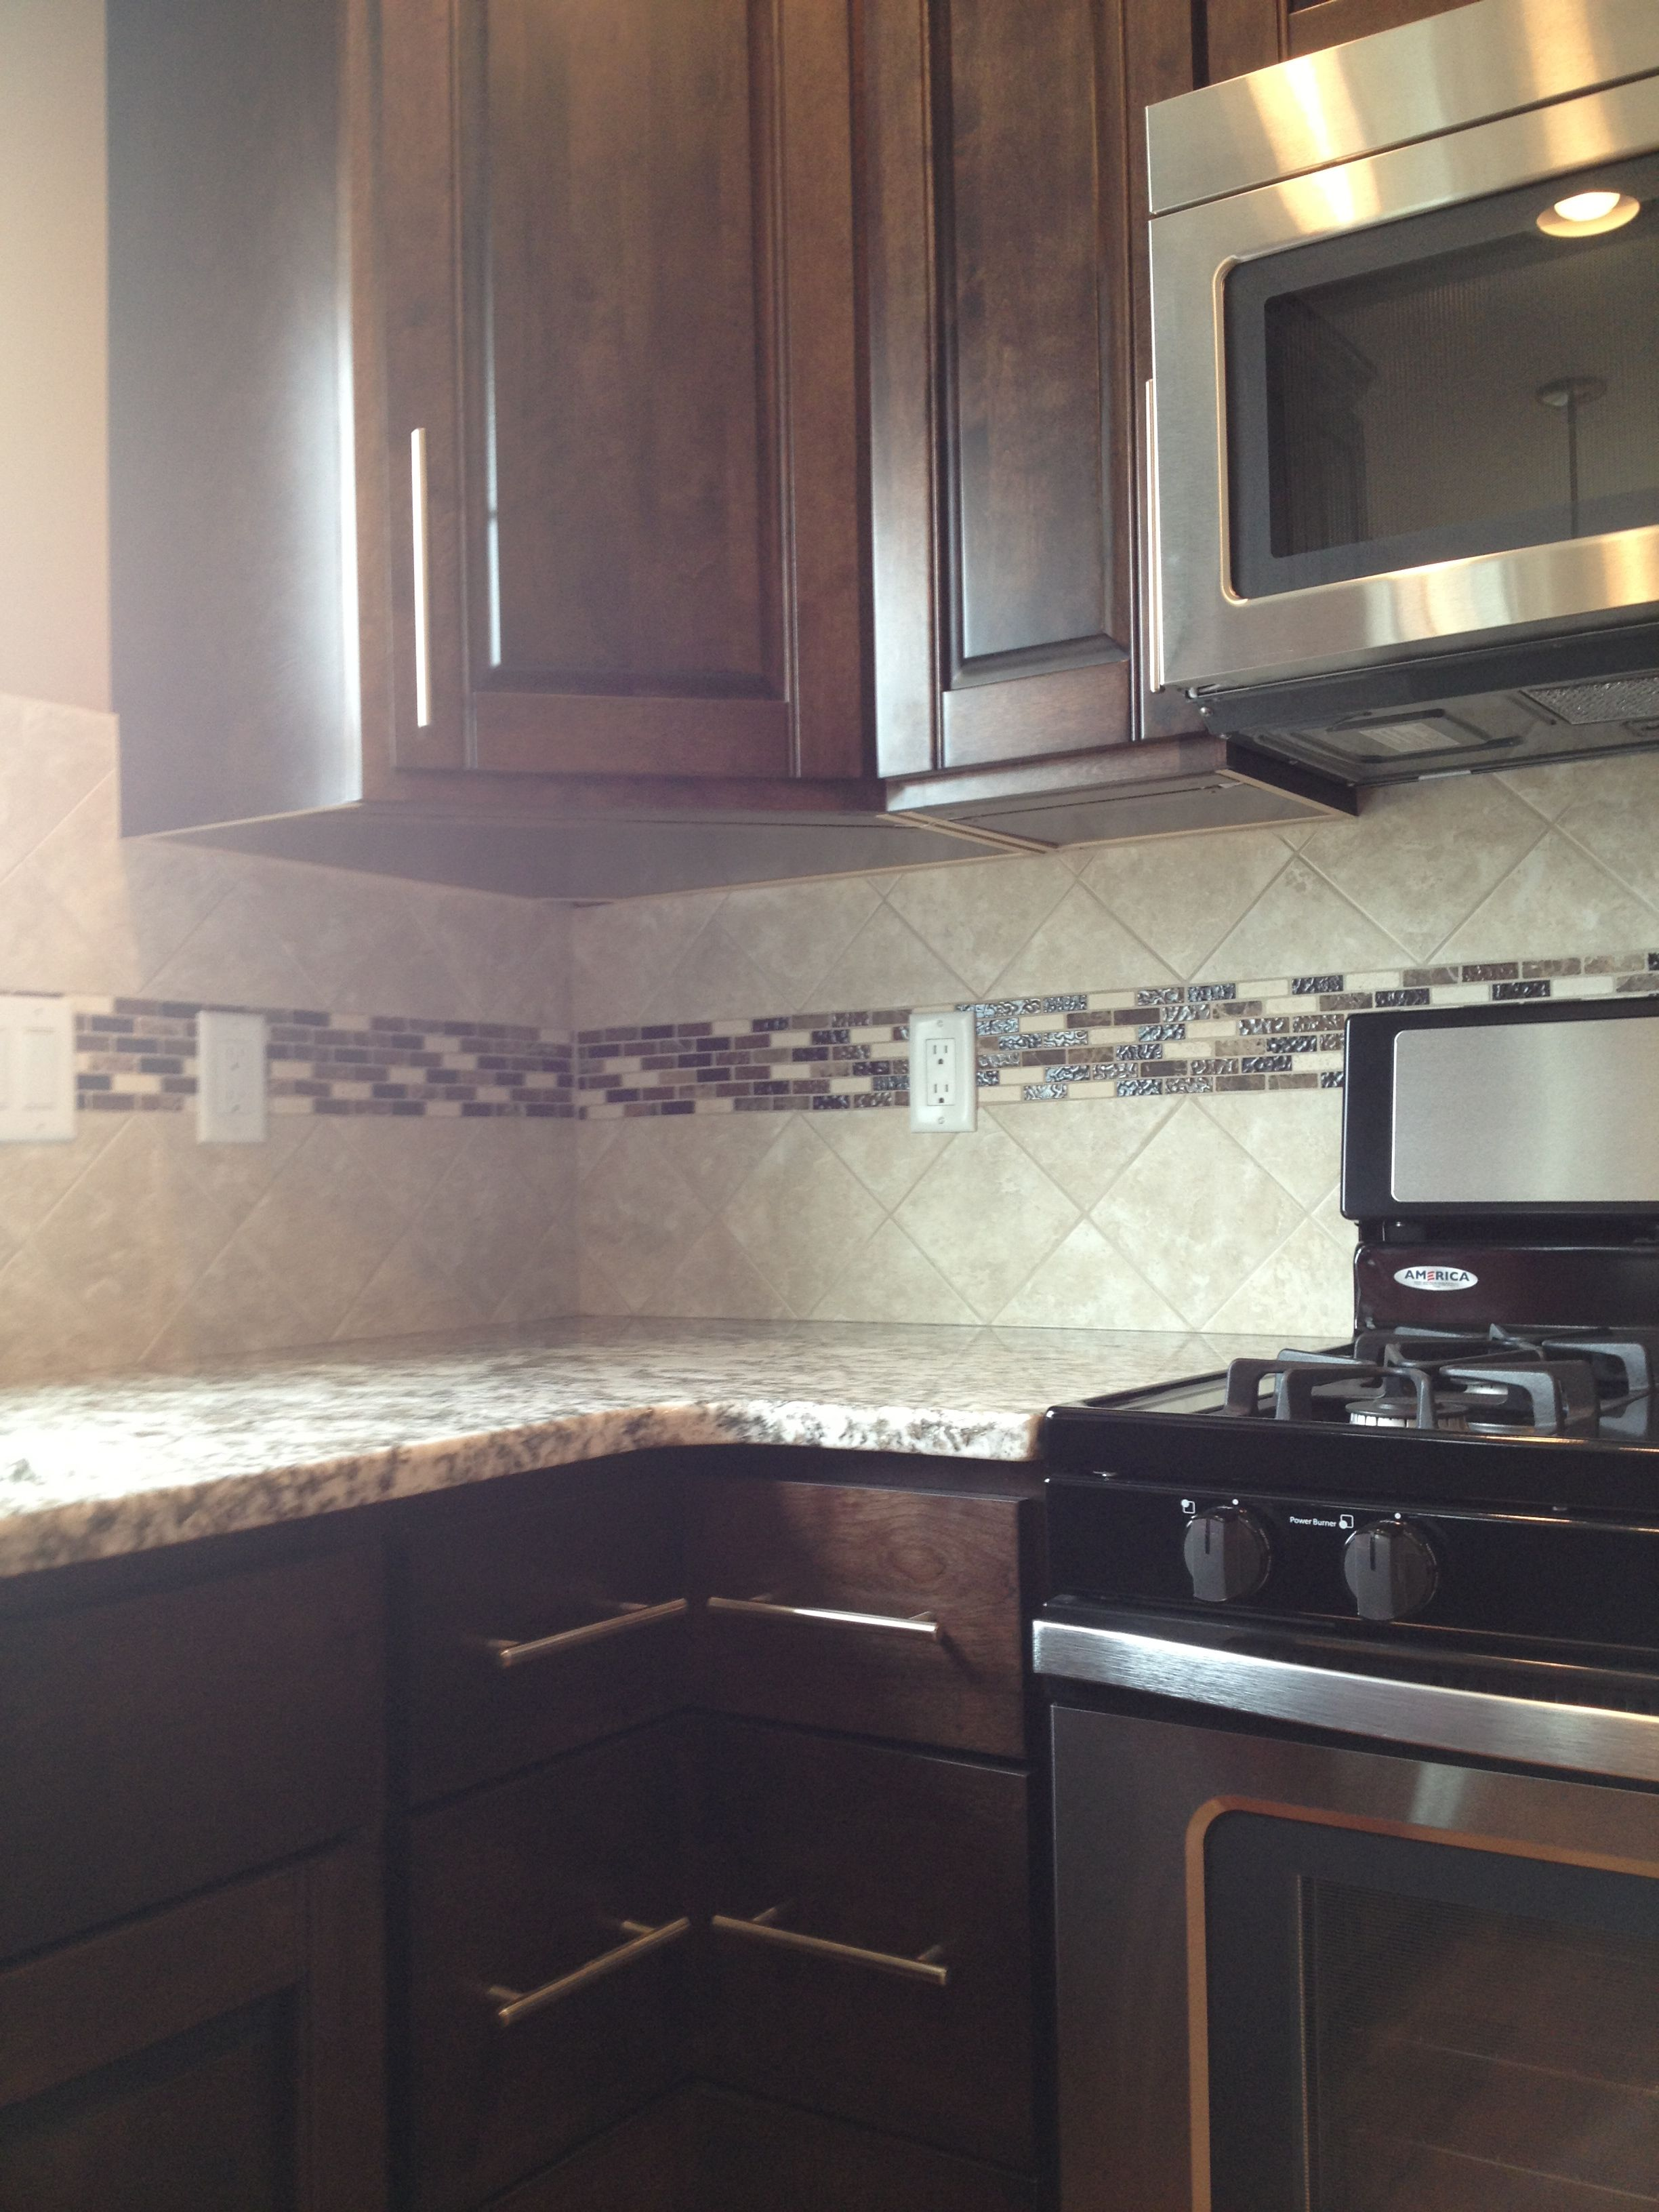 Kitchen Backsplash Accents kitchen backsplash with accent strip | designdennis